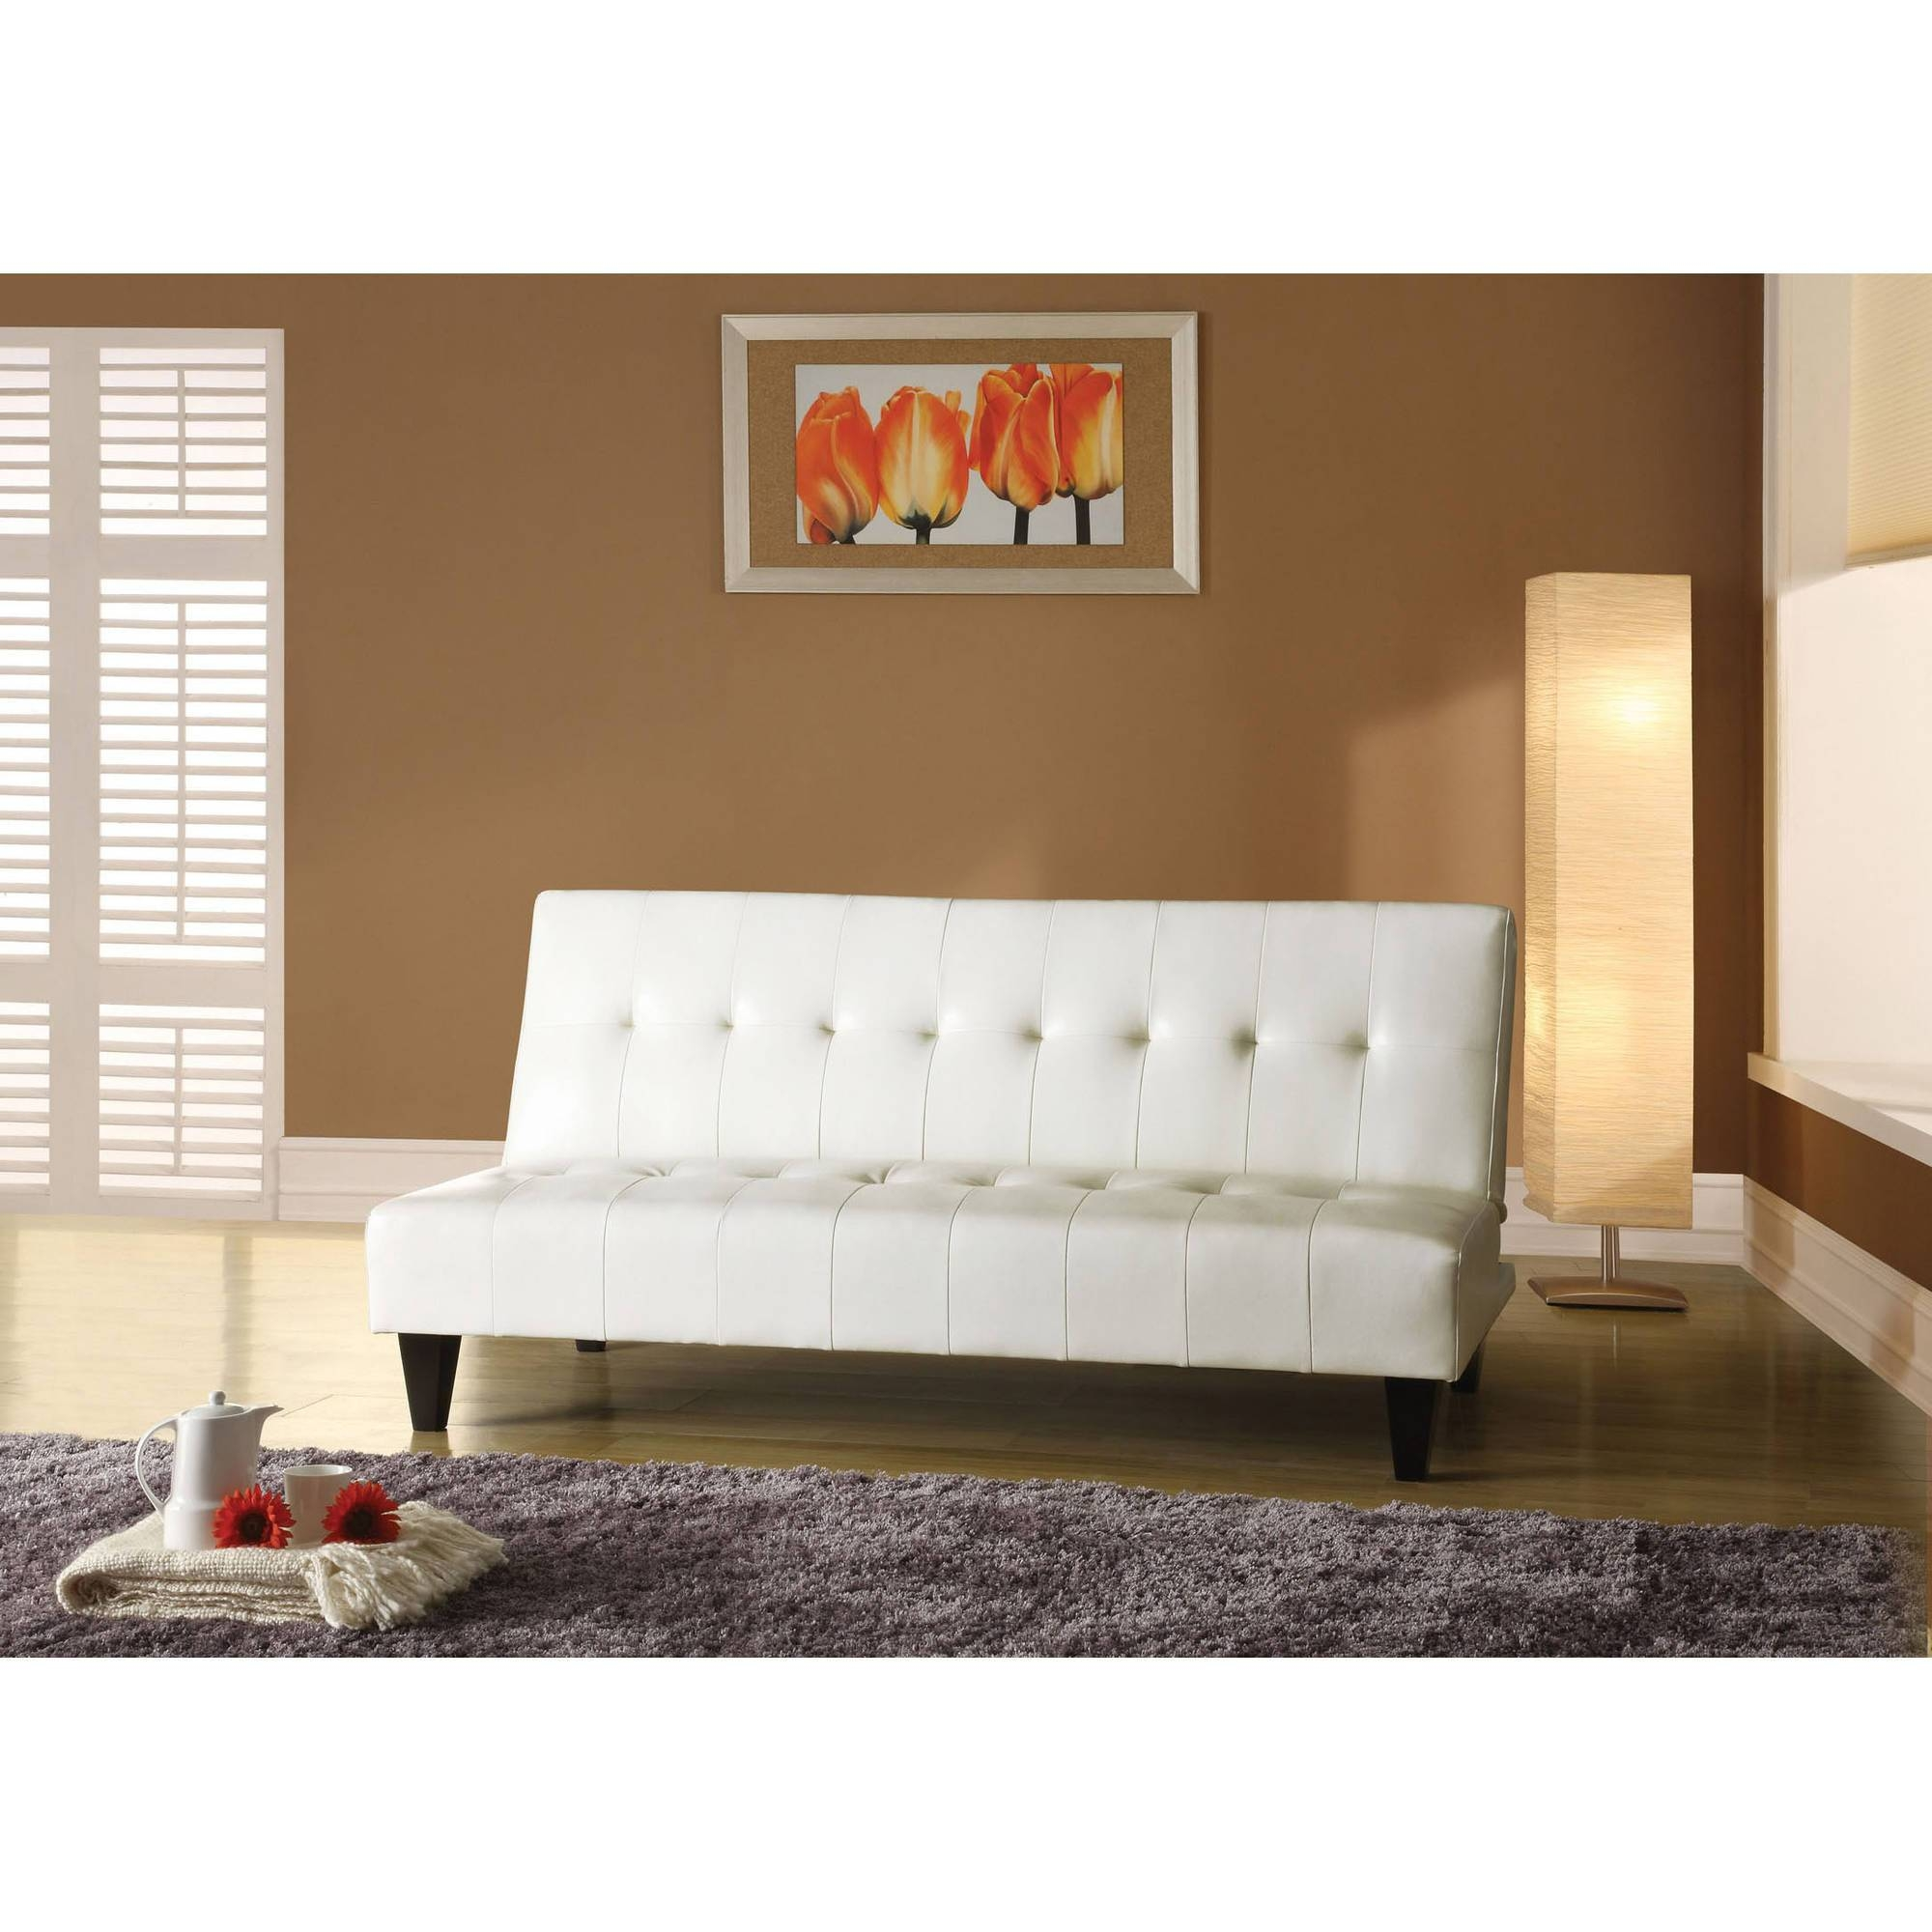 Furniture: Futon Sofa Bed With Storage | Faux Leather Futon intended for Faux Leather Futon Sofas (Image 8 of 15)